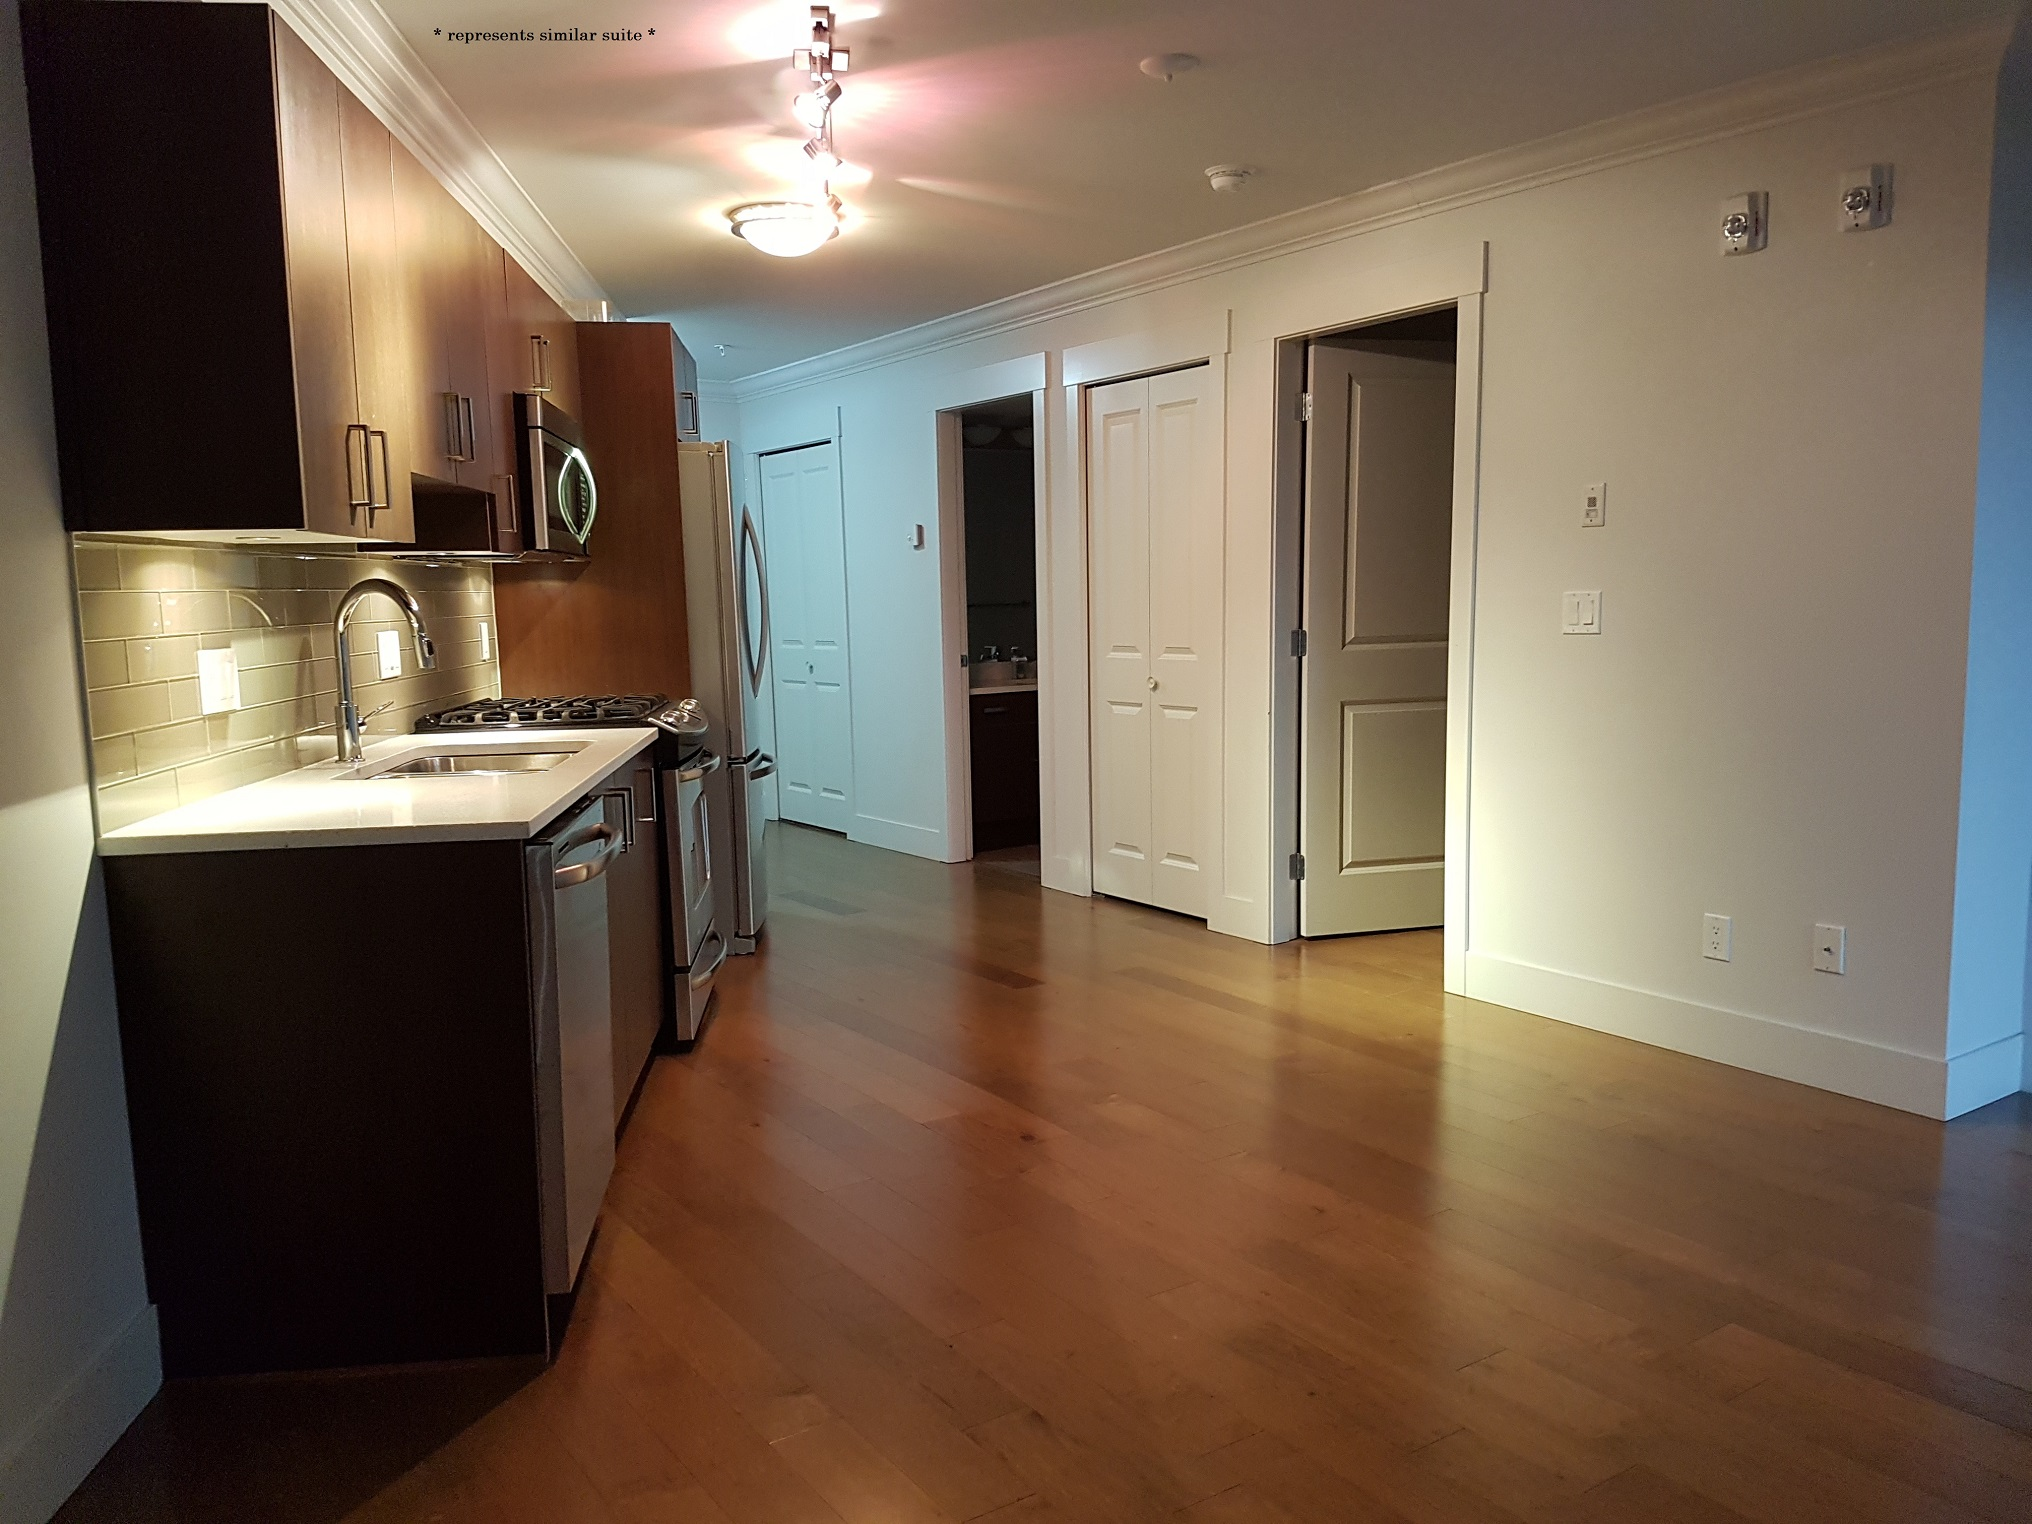 857 West 15th Street, North Vancouver, 1 Bedroom Bedrooms, ,1 BathroomBathrooms,Apartment,For Rent,THE VUE,West 15th Street,2,1037